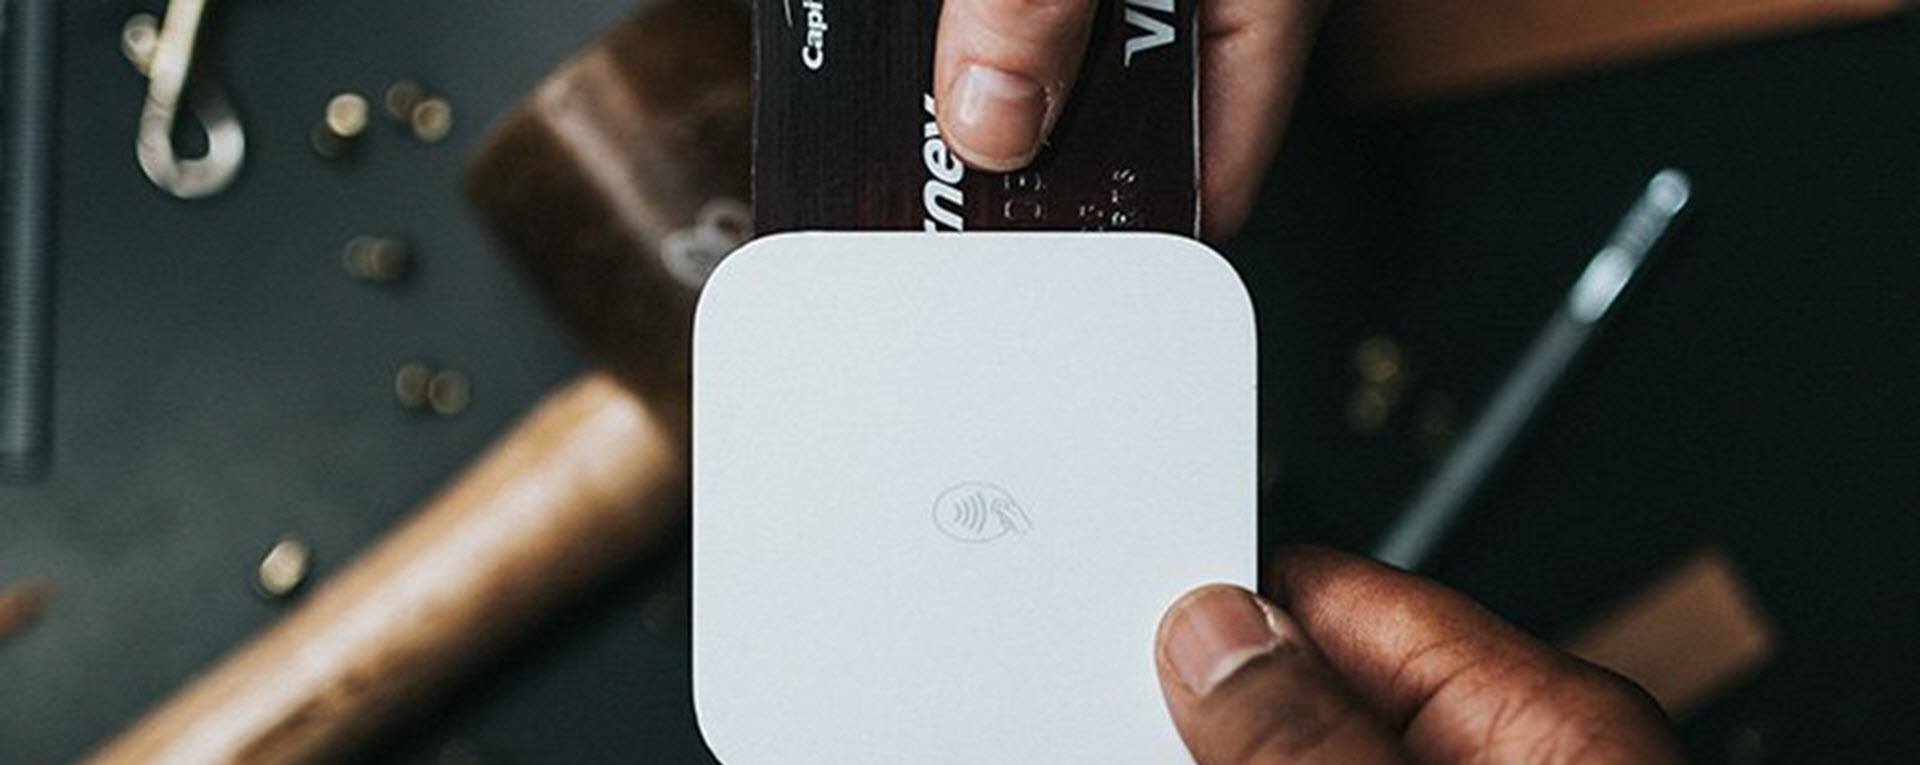 white-paper-the-path-to-credit-card-differentiation-770x406